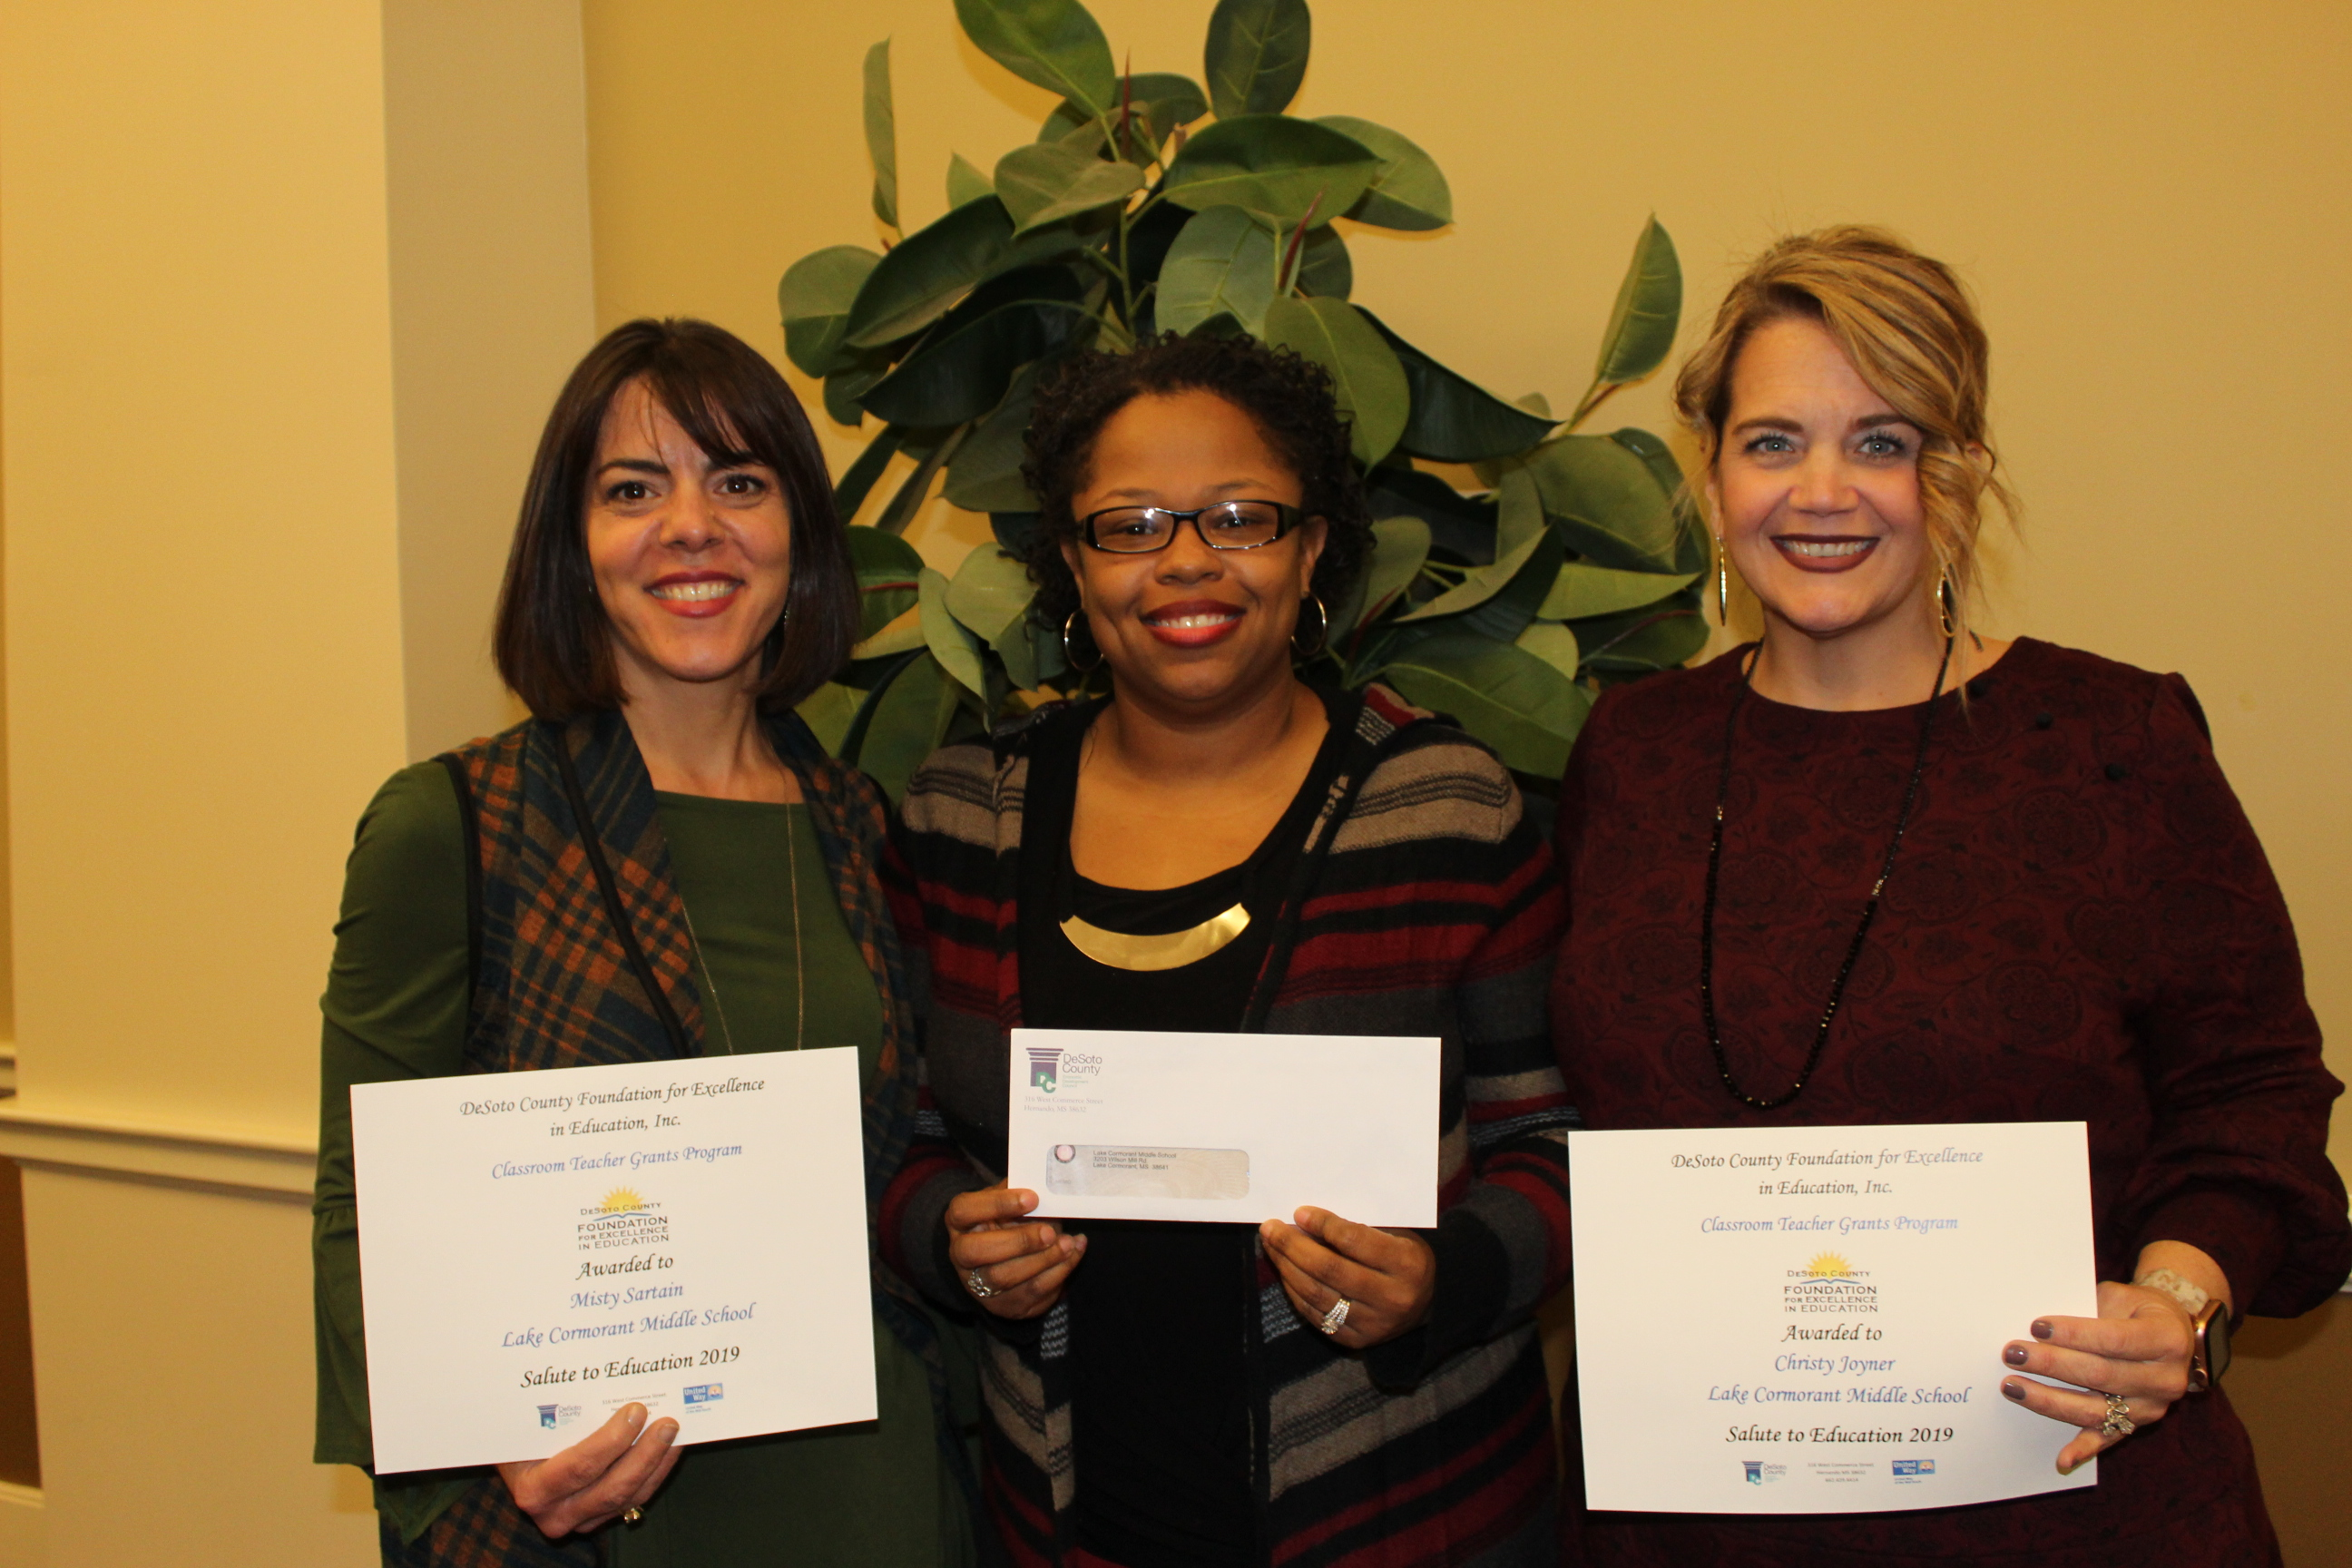 Foundation for Excellence in Education grant winners